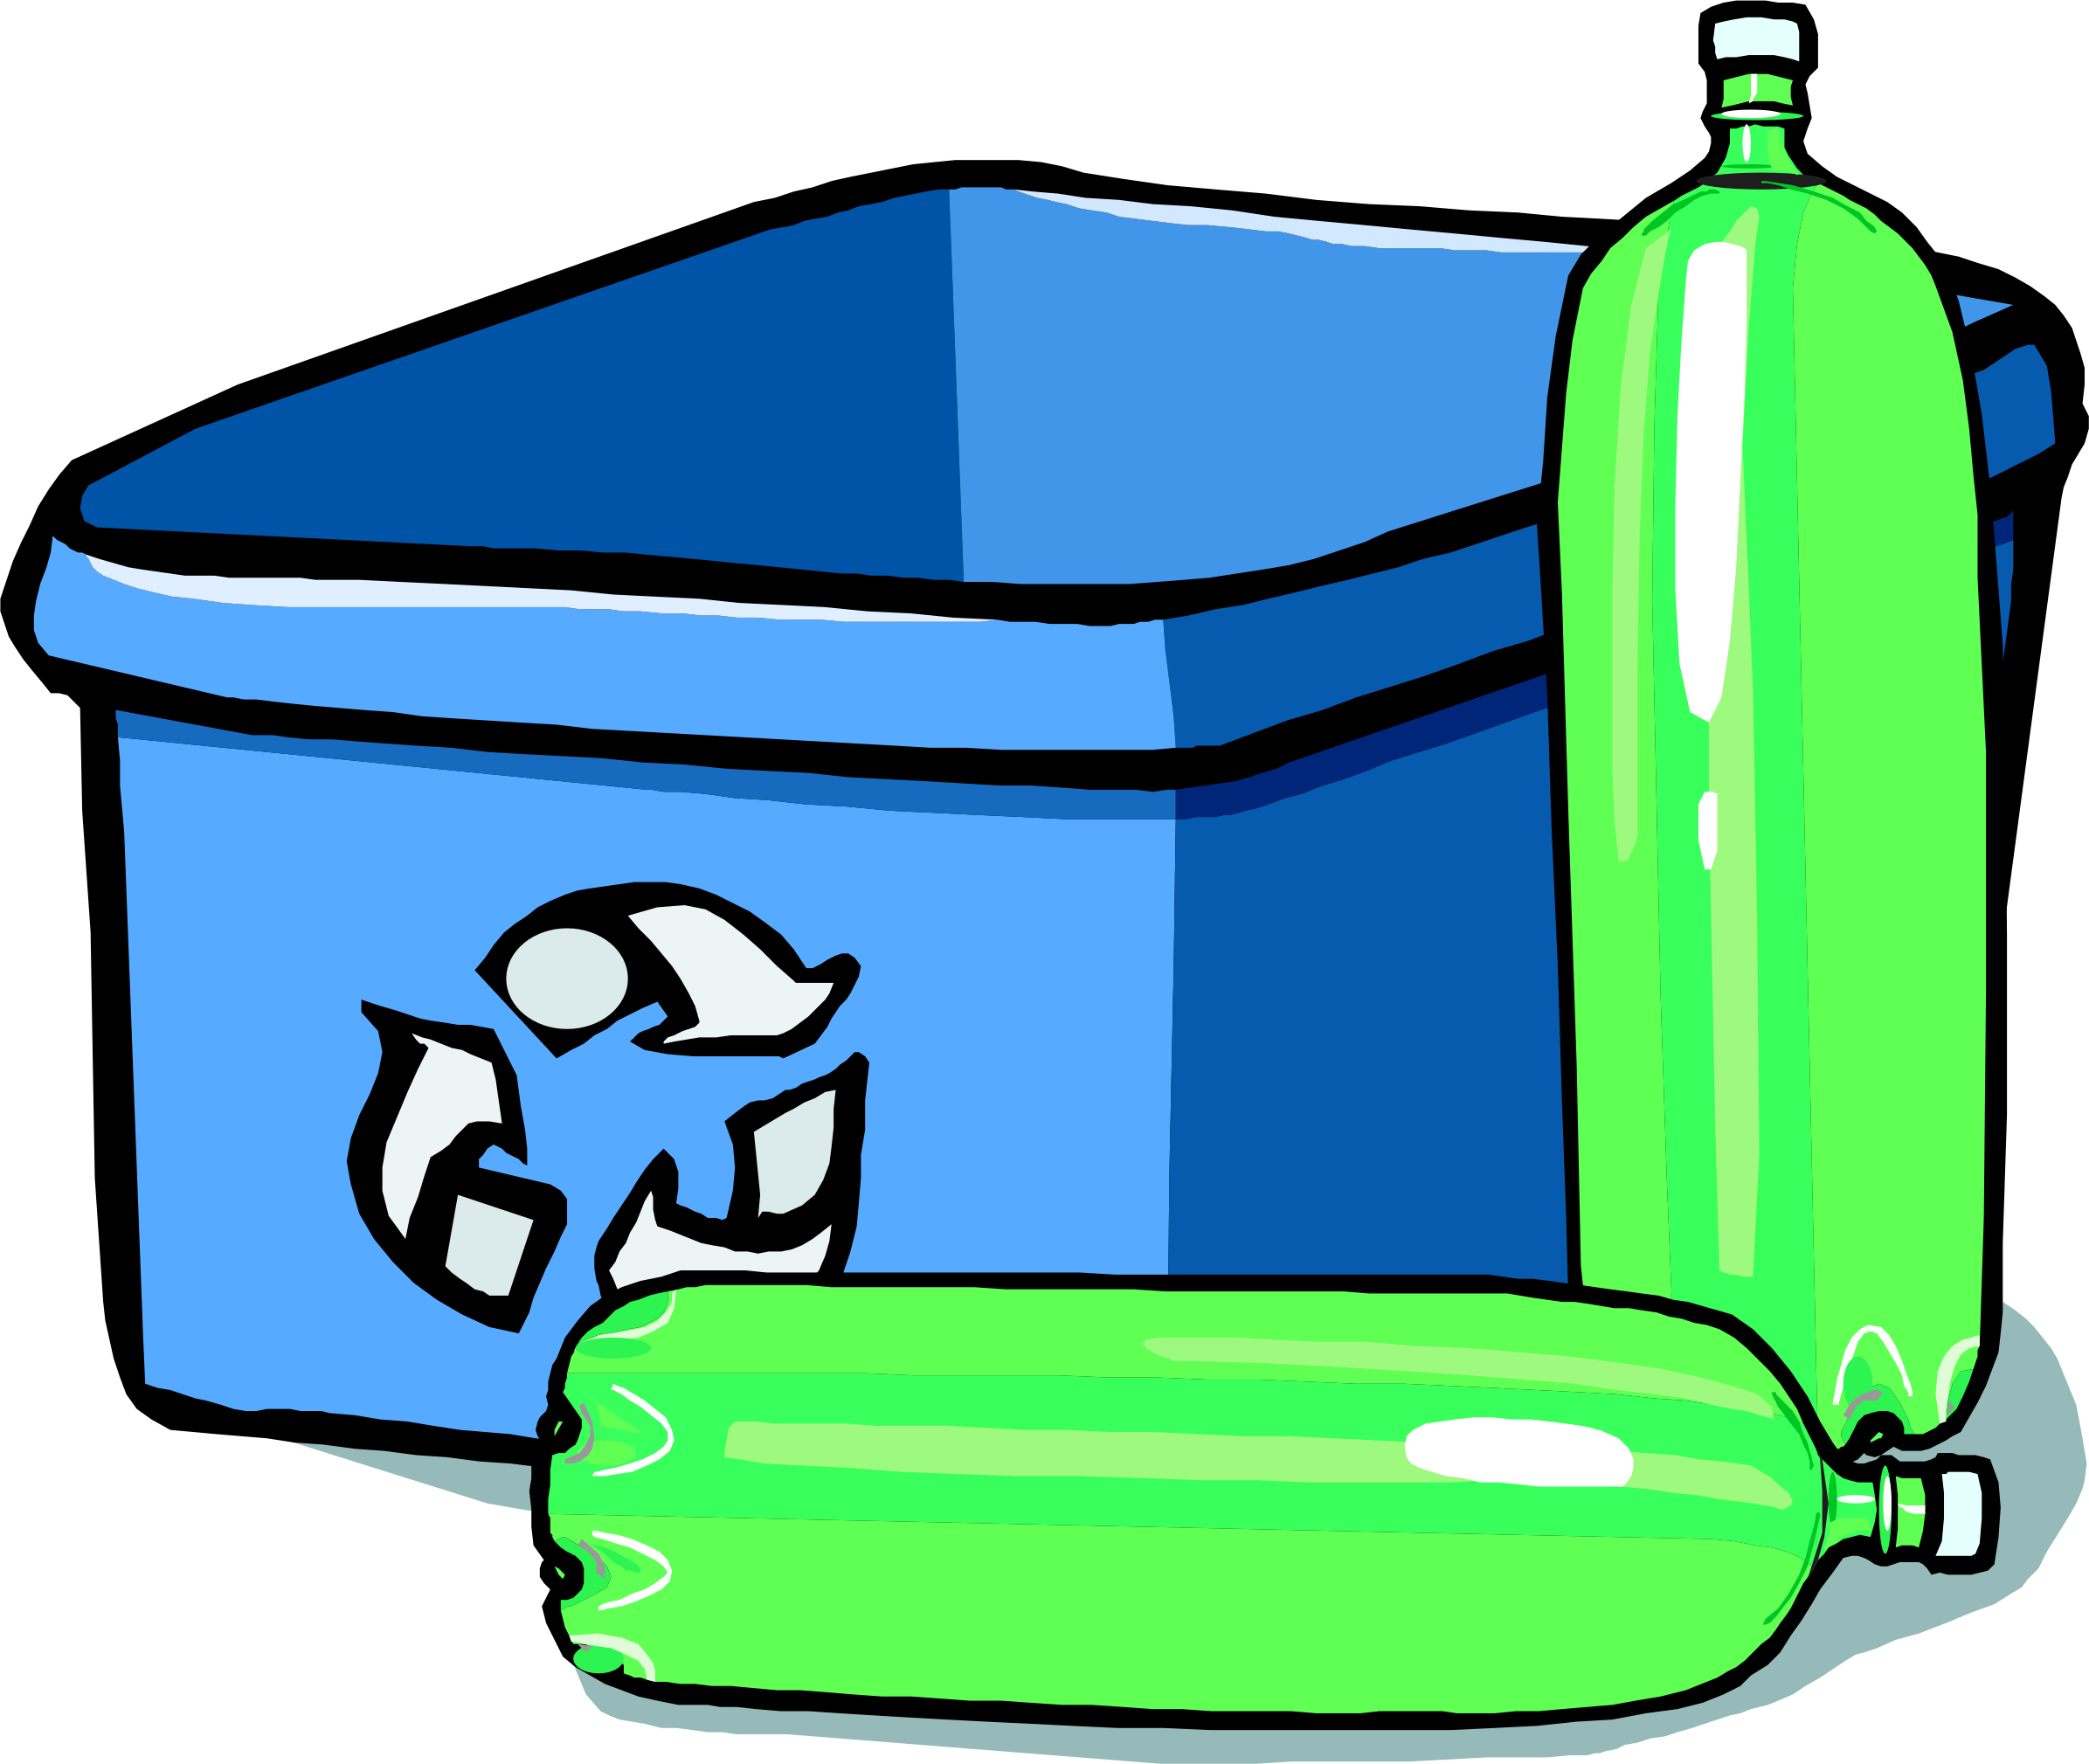 Clipart water bin. Recycling and bottles icons